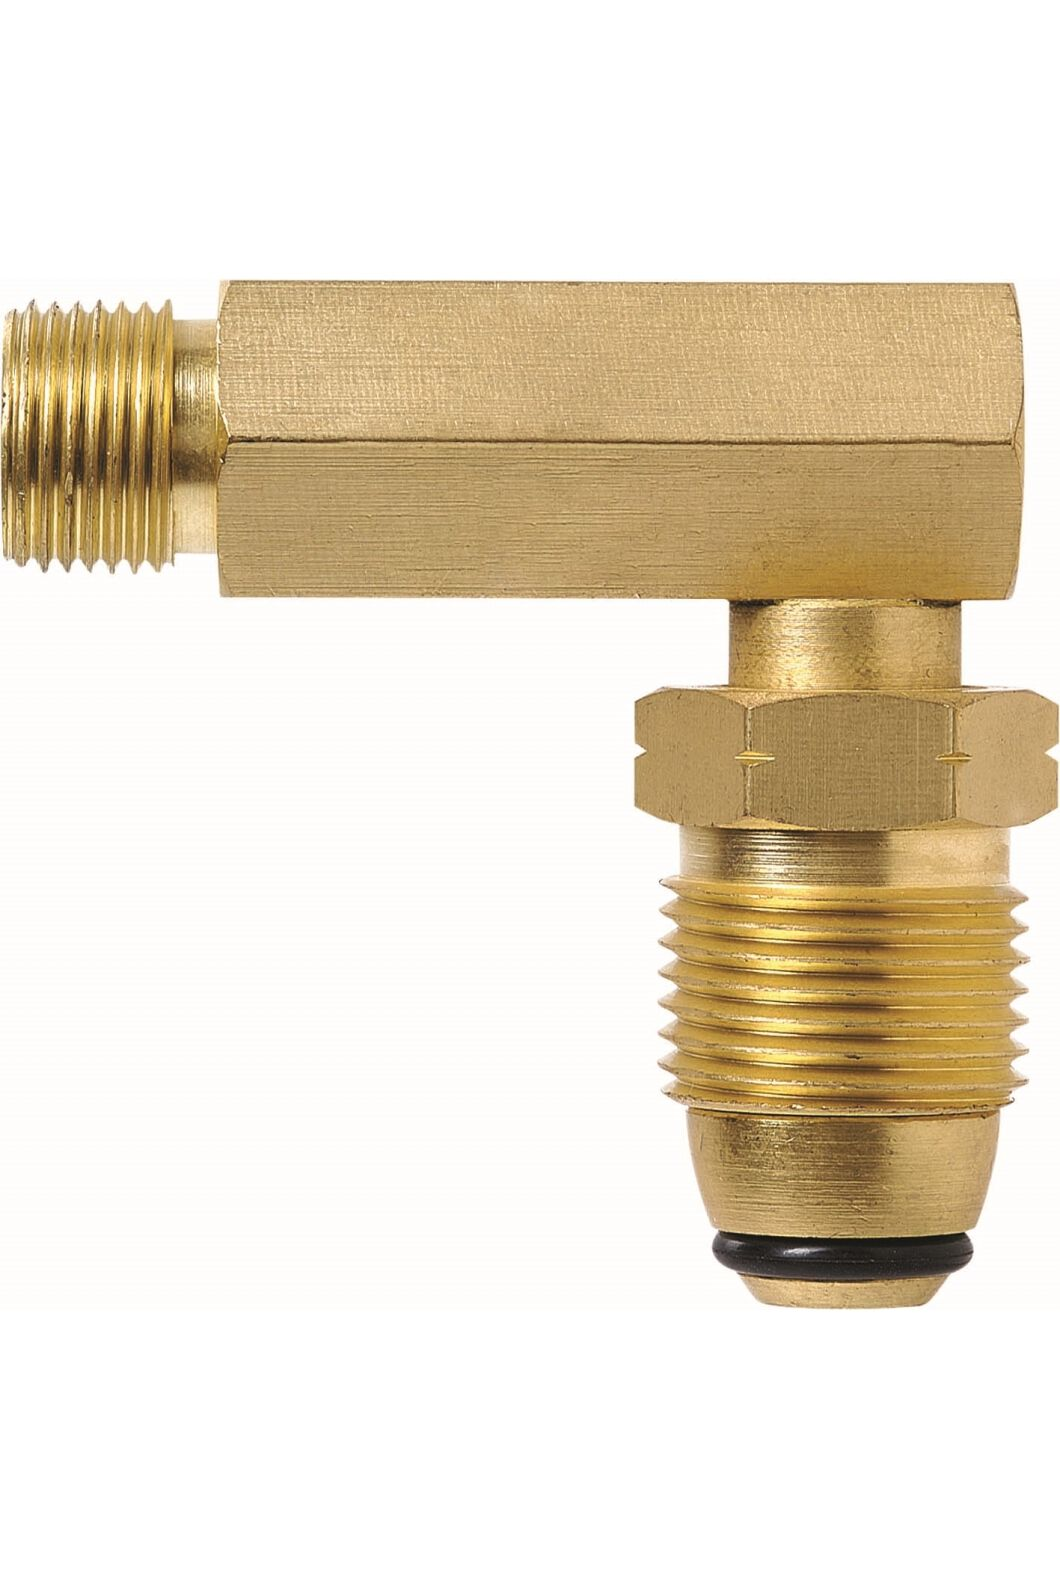 Primus POL to 3/8 LH Angle Adaptor, None, hi-res